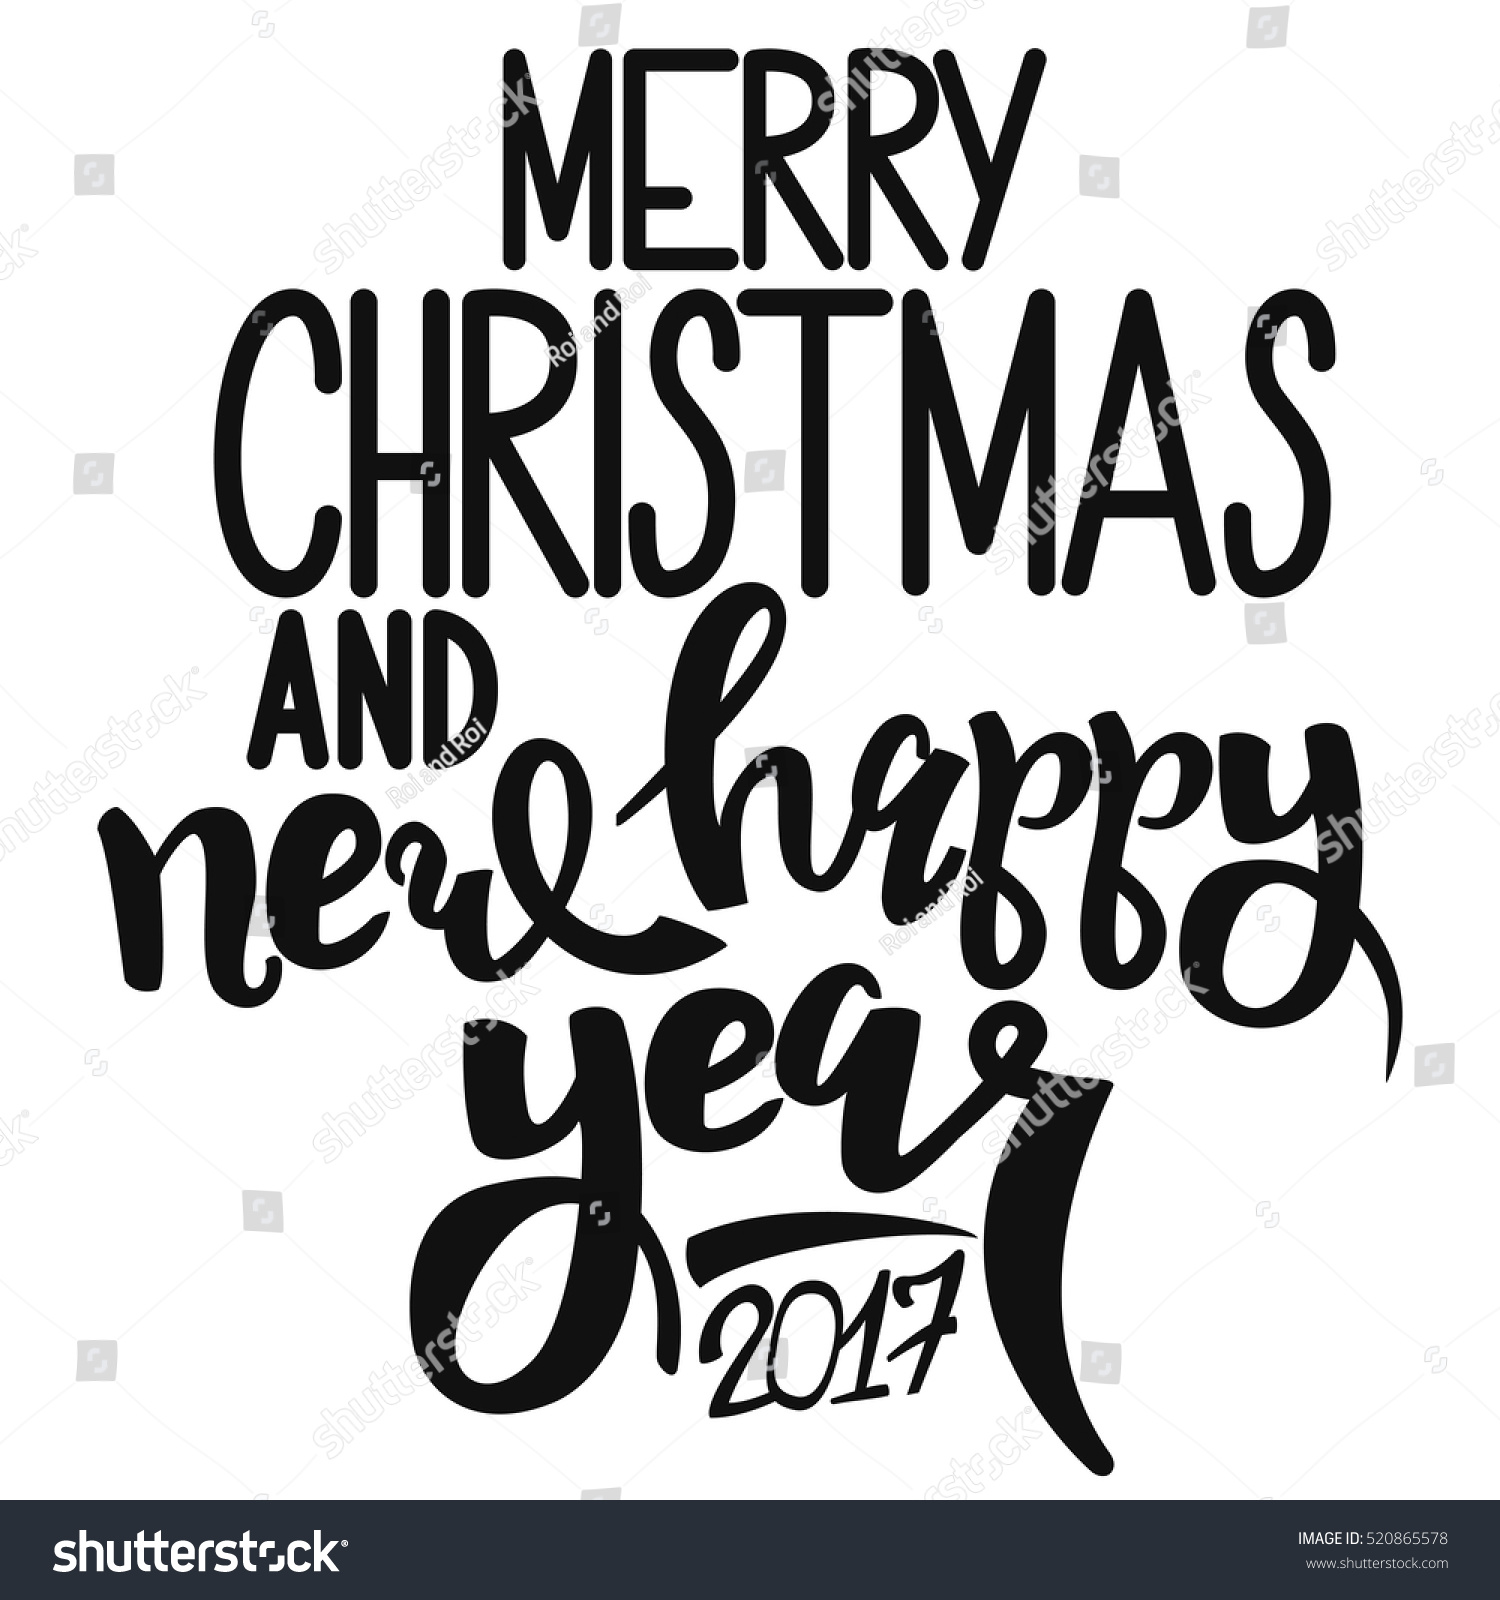 black text merry christmas happy new stock vector royalty free 520865578 https www shutterstock com image vector black text merry christmas happy new 520865578